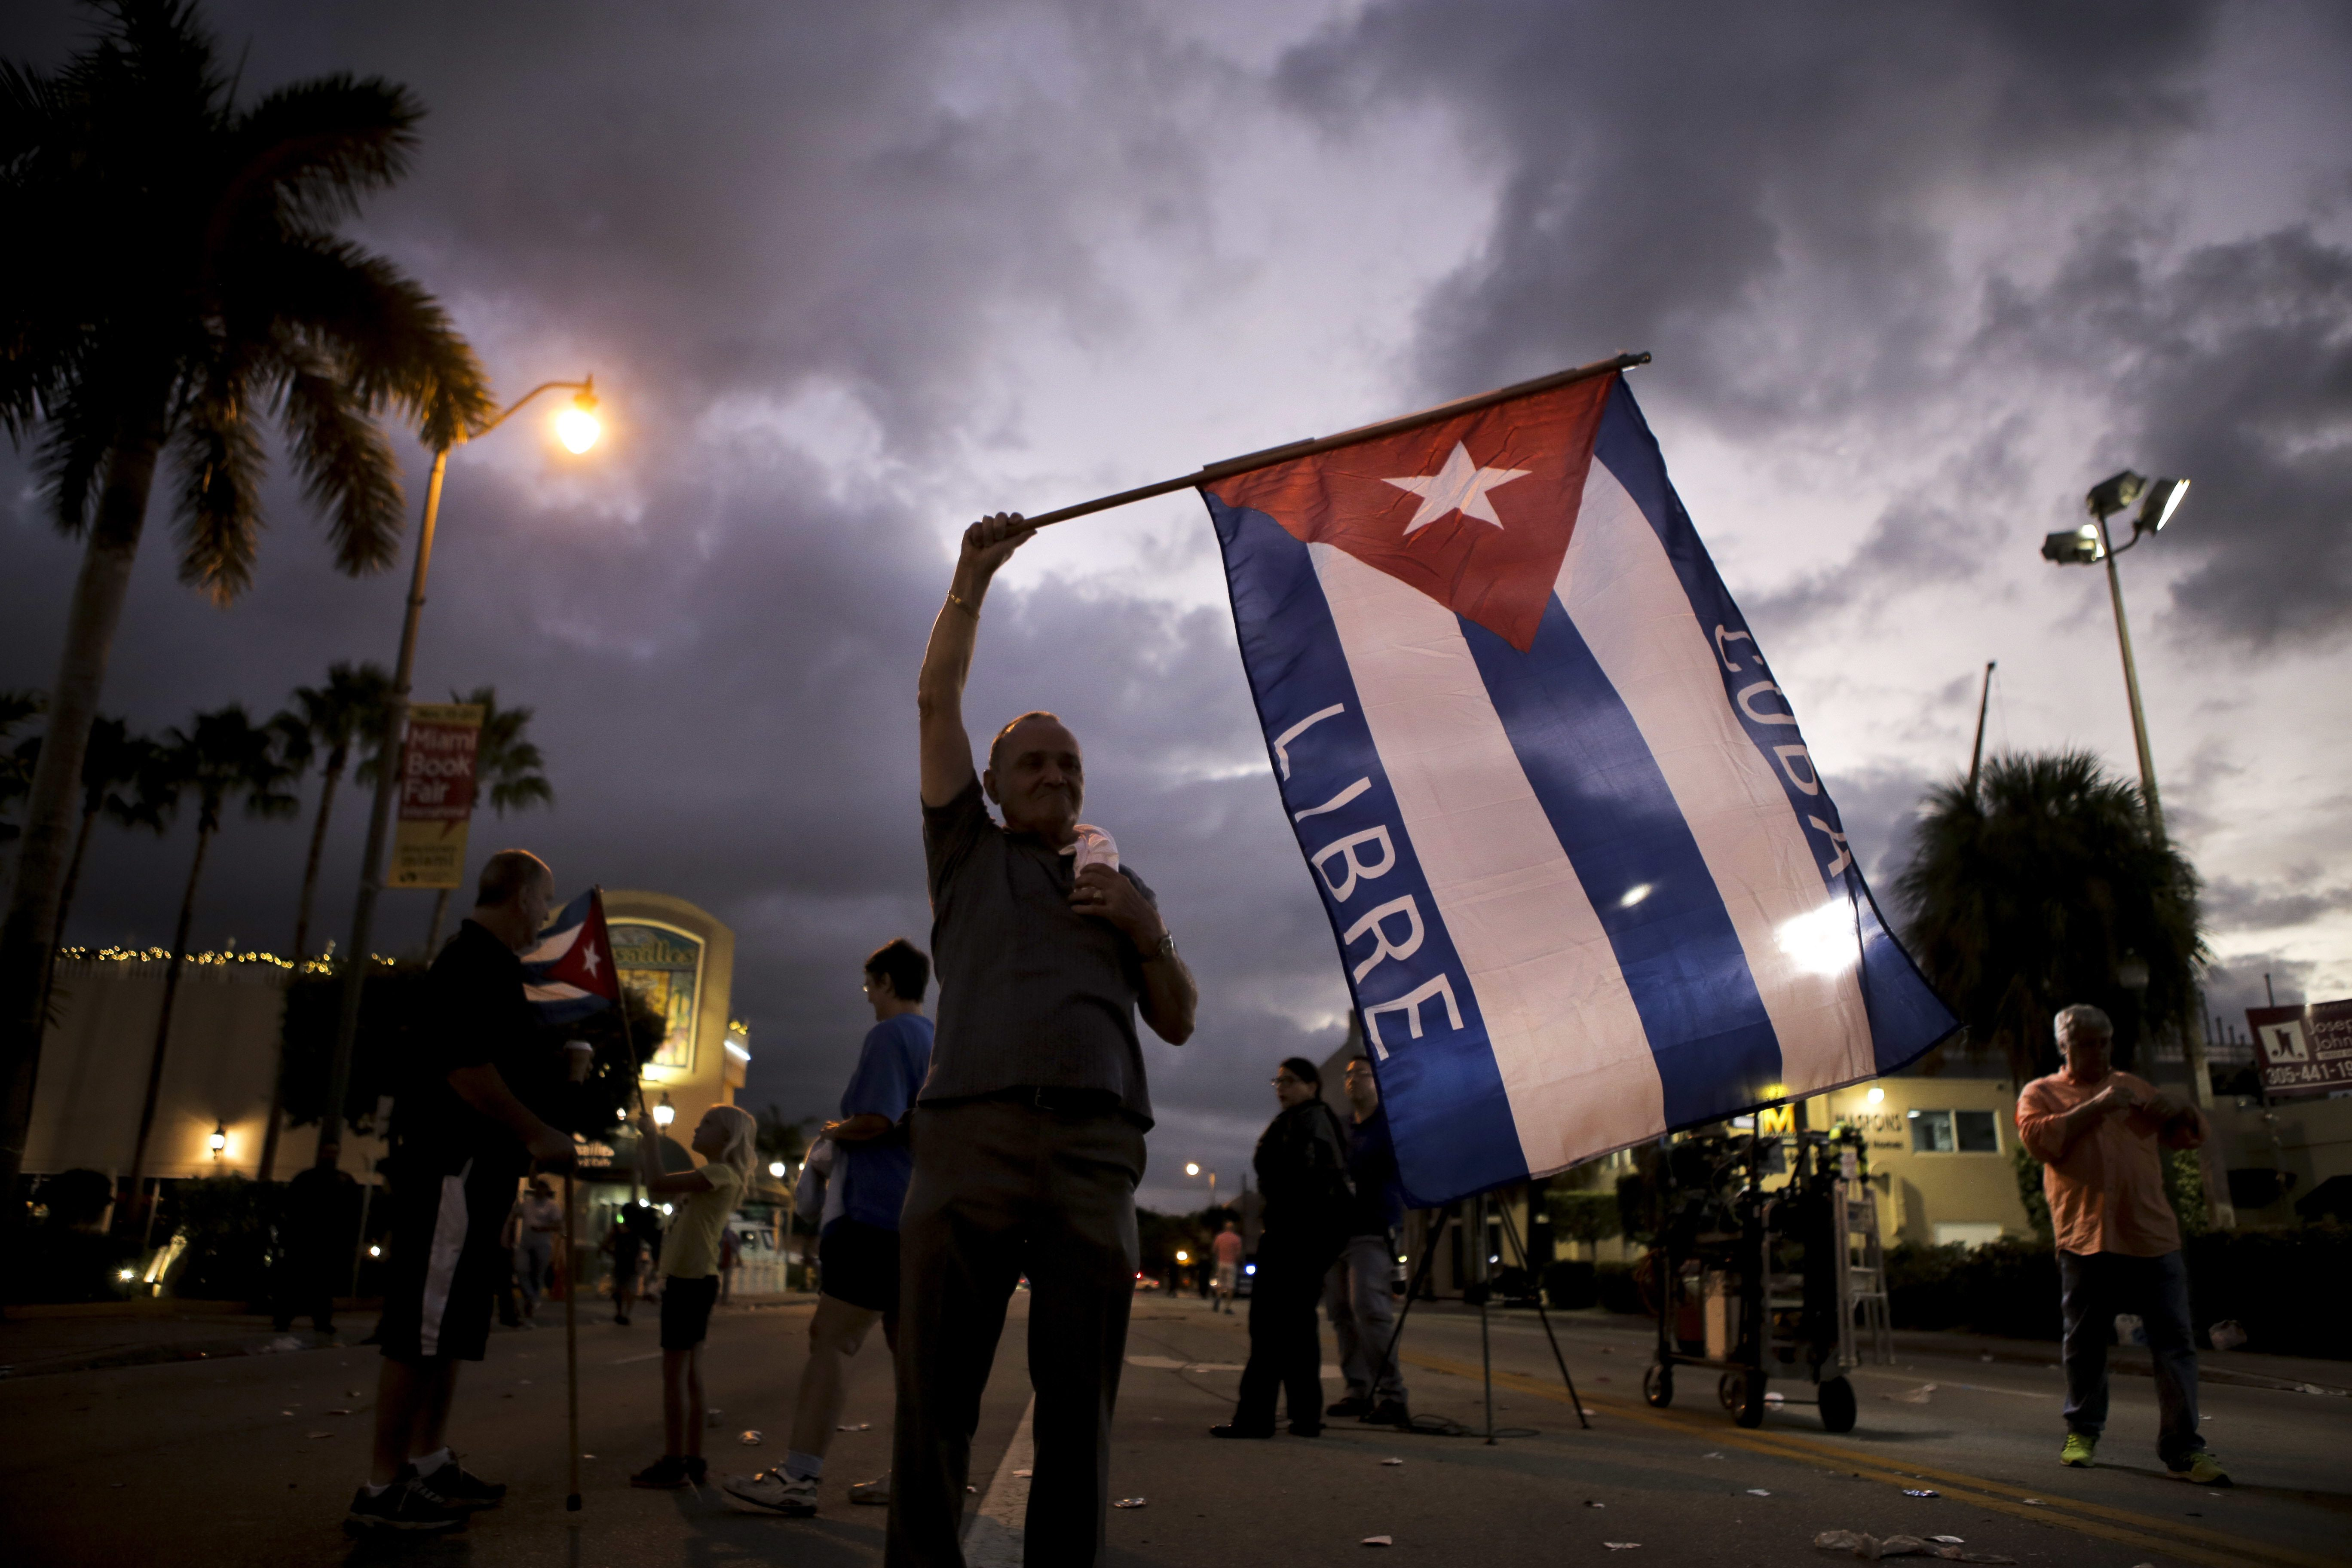 Hernan Reyes waves a Cuban flag on Saturday, nov. 26, 2016. Reyes was one of many people who celebrated the death of Fidel Castro in a festive way in the streets of Little Havana. Reyes described Saturday as the happiest day of his life. (Randy Vazquez/South Florida Sun-Sentinel via AP)